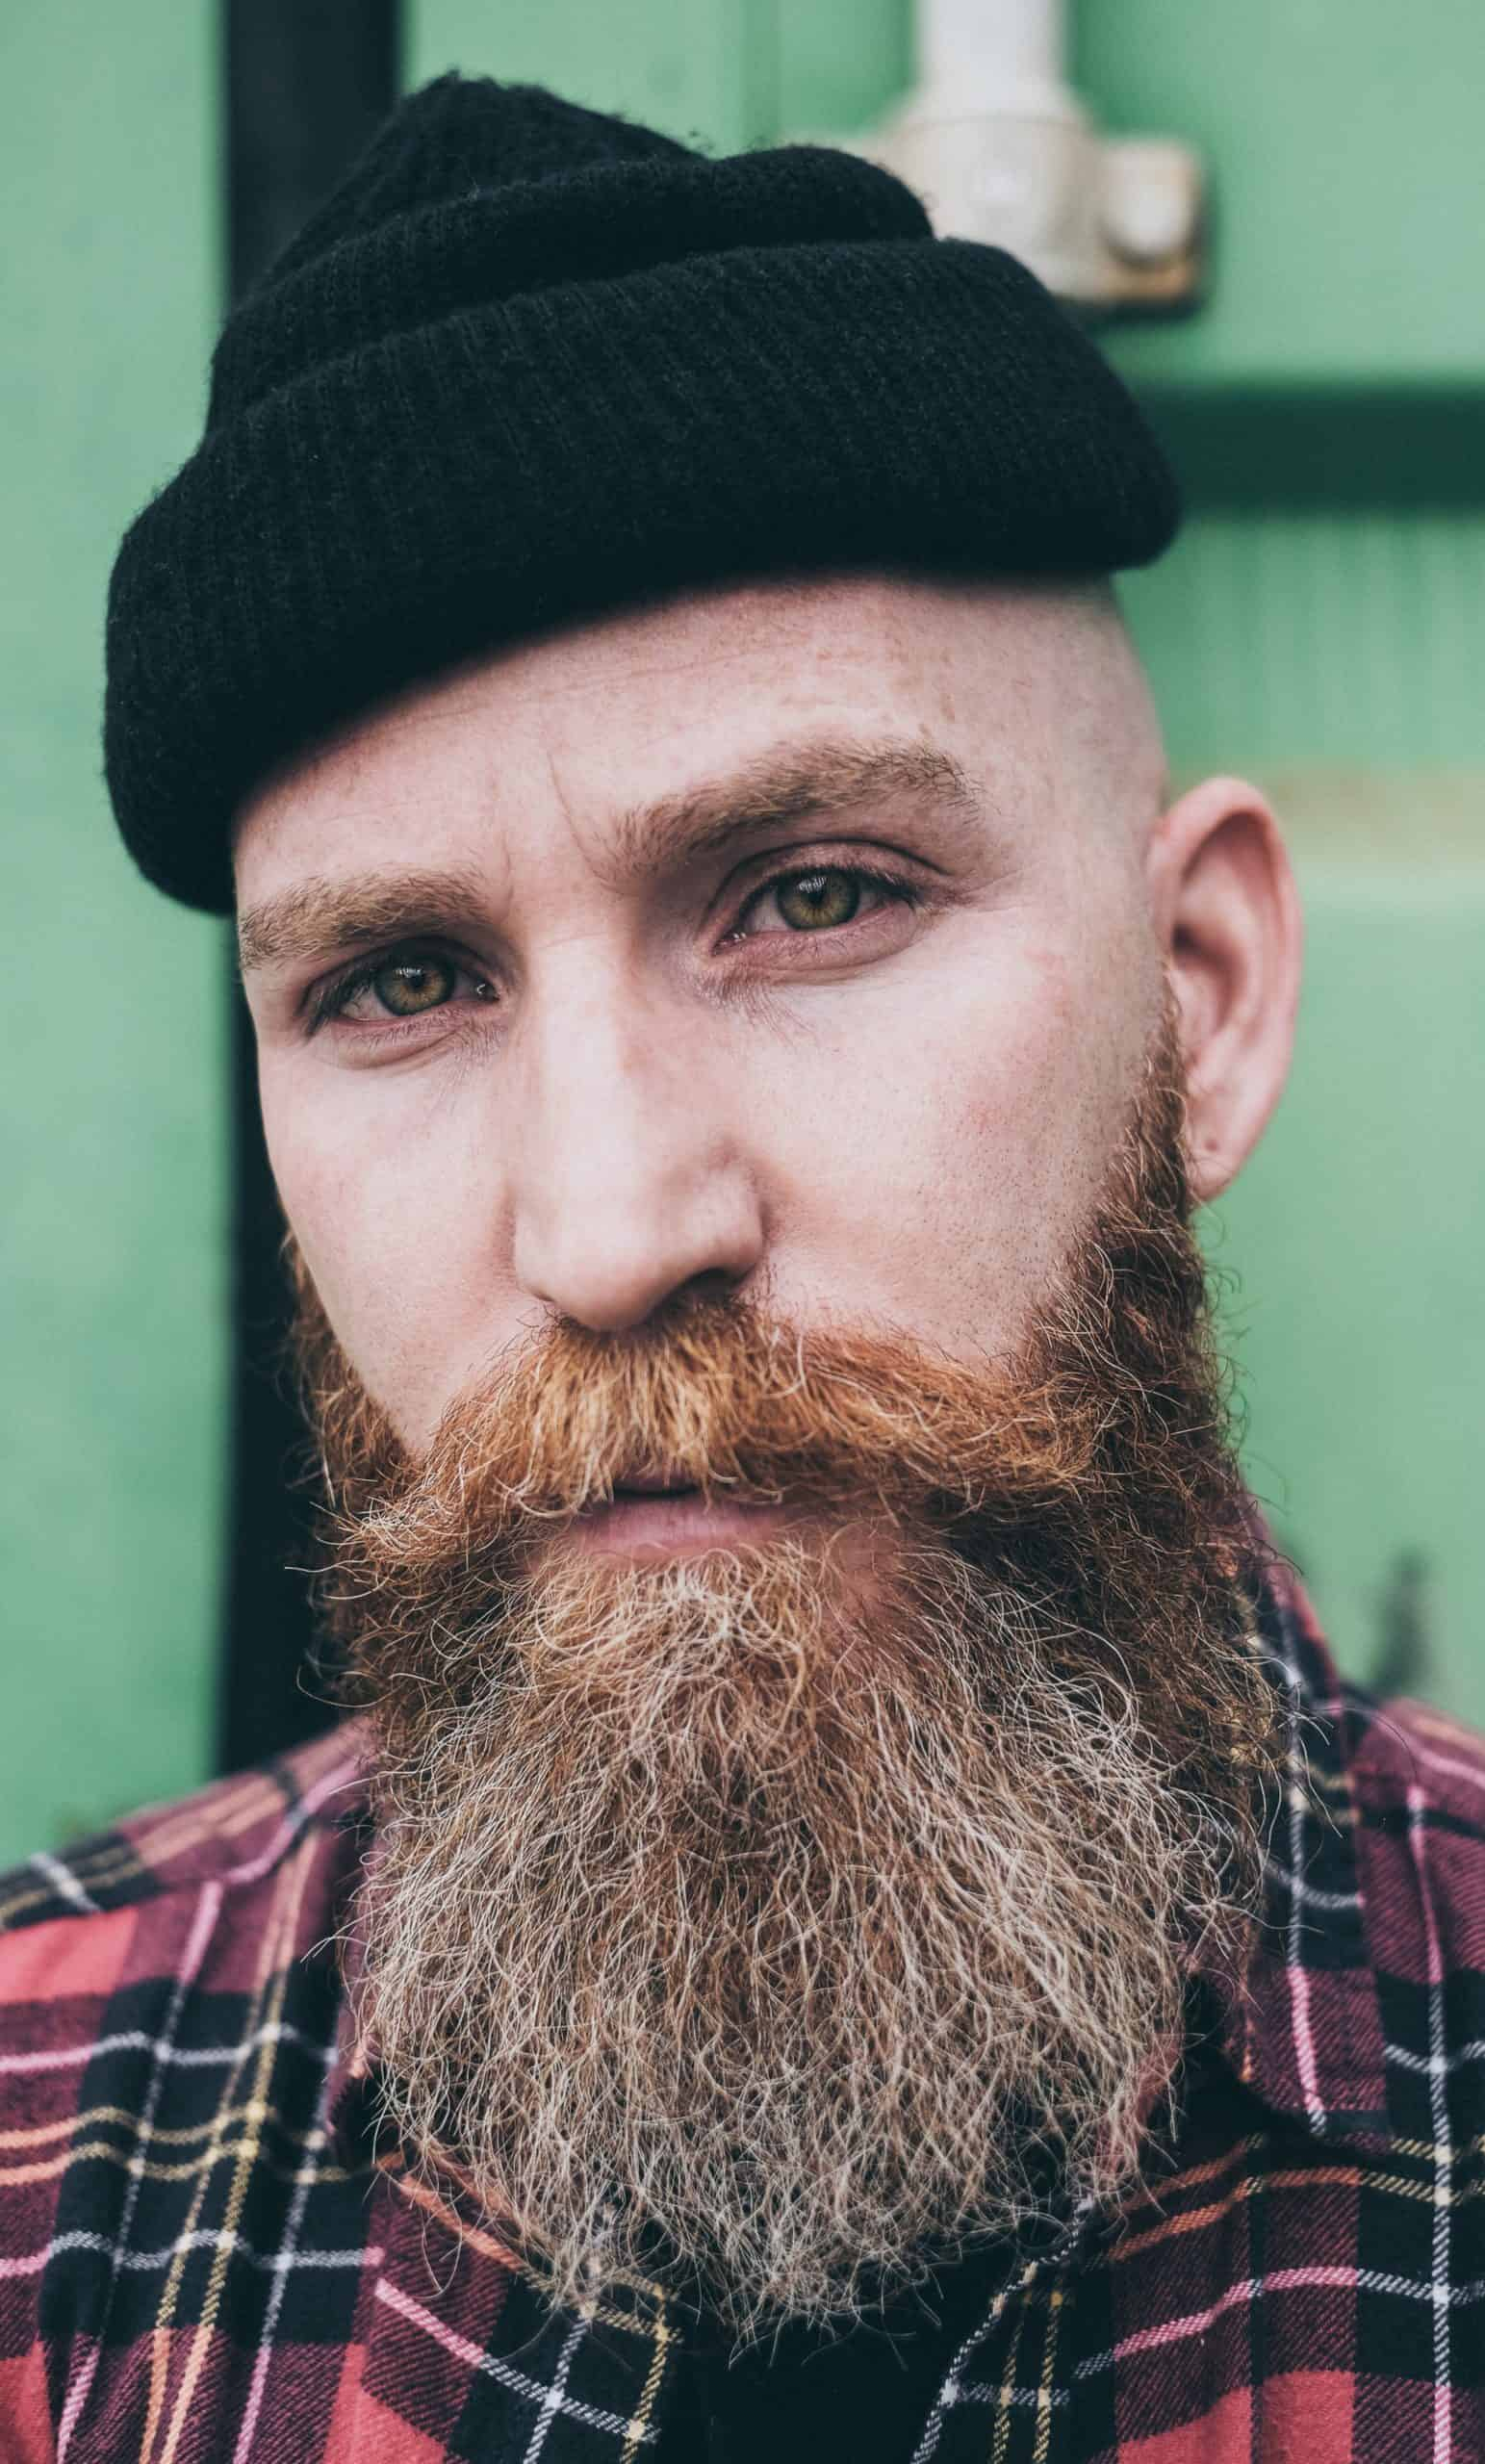 Growing Long Beard: Are You Ready To Grow A Great Bearded Guy?